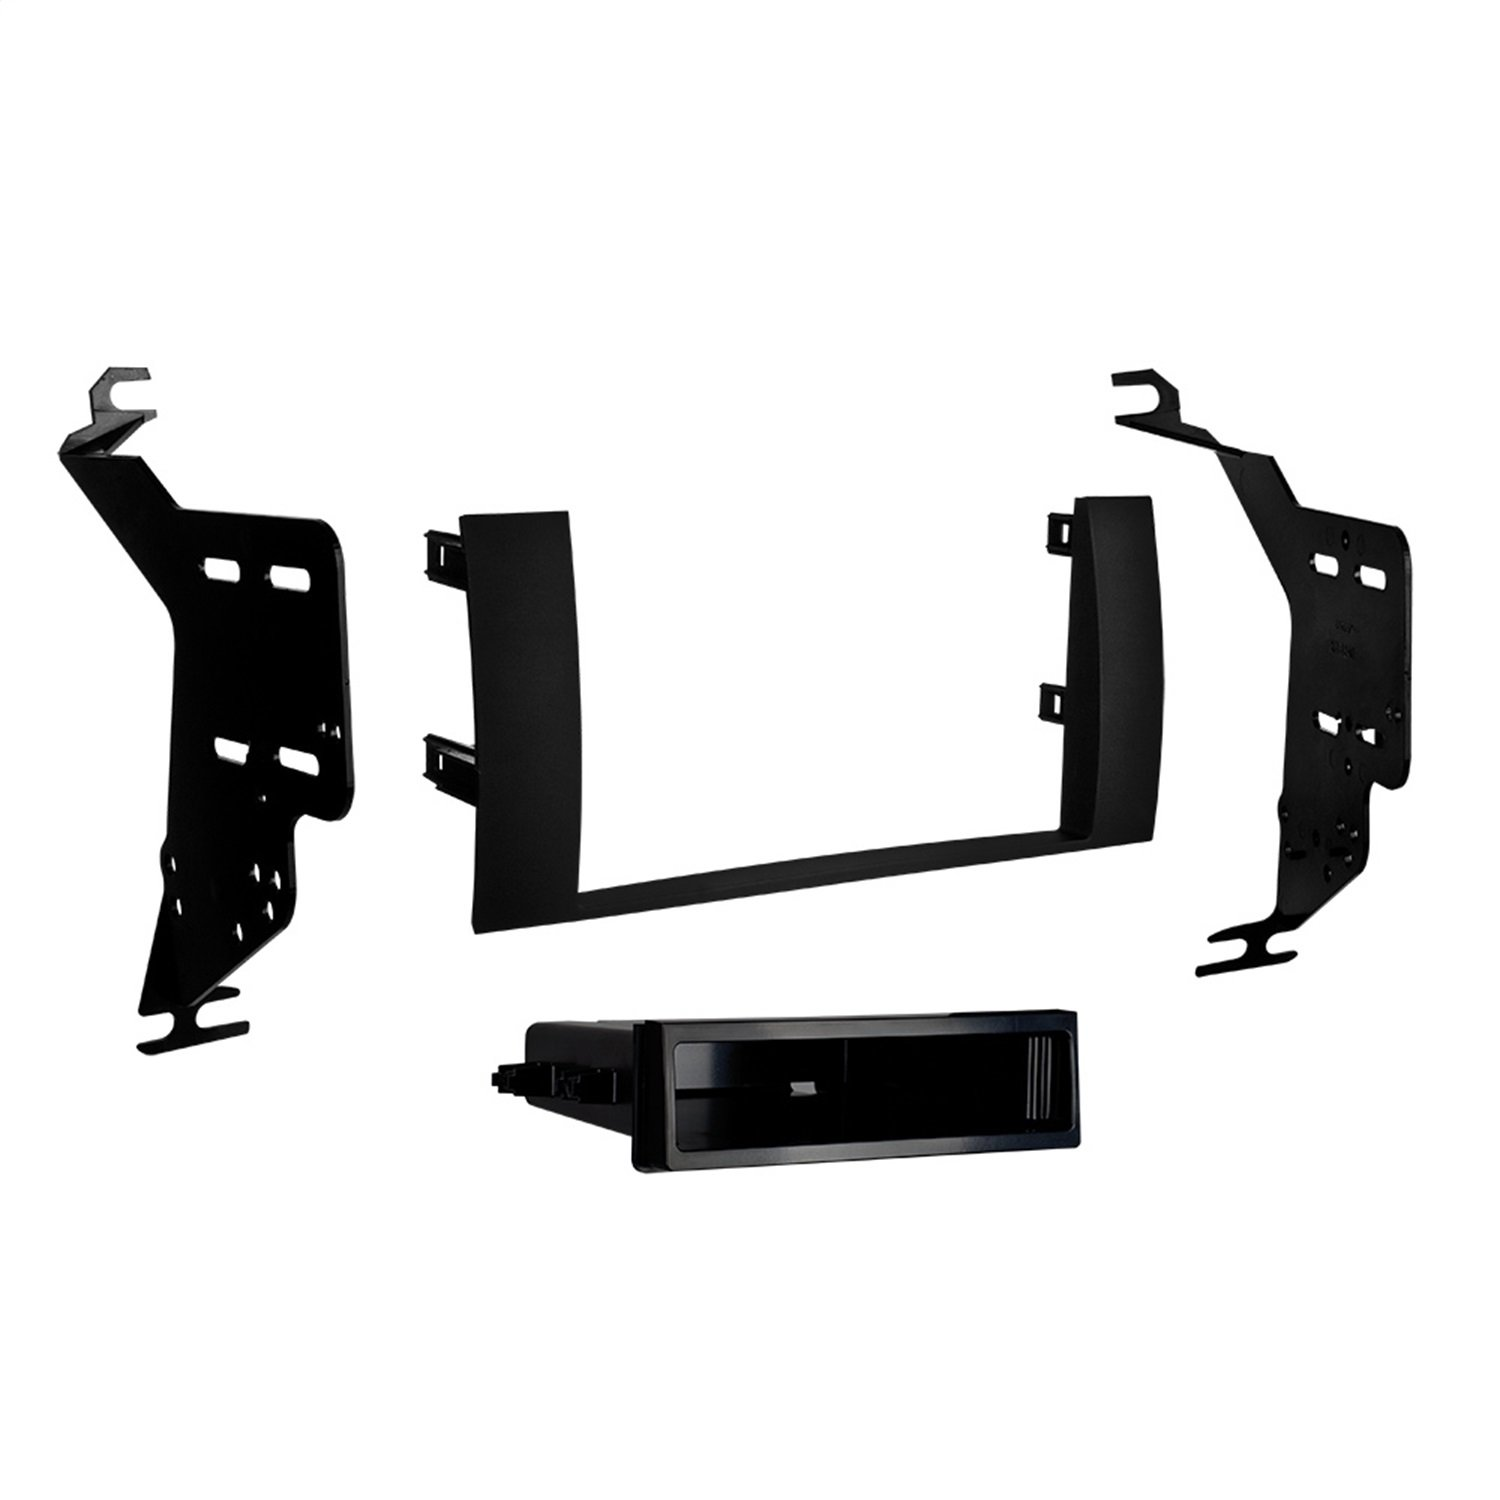 Metra 95-8240B Toyota Prius 2004-09 Black Double DIN Stereo Dash Kit (Matte black)